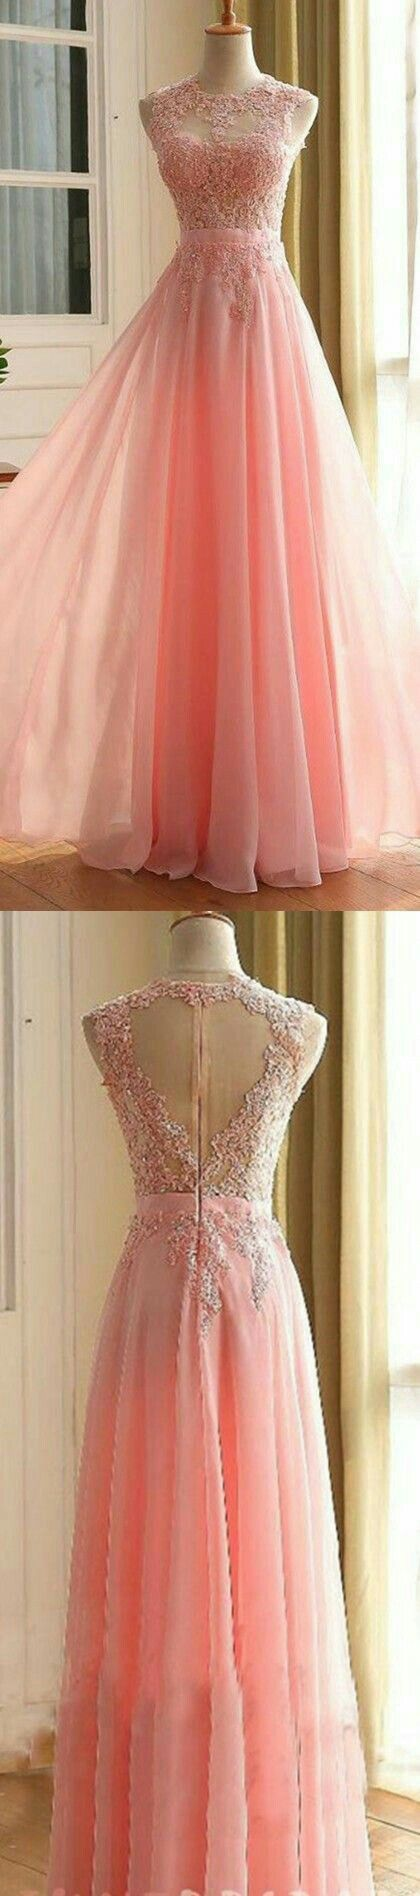 best ball images on pinterest ball gown long prom dresses and